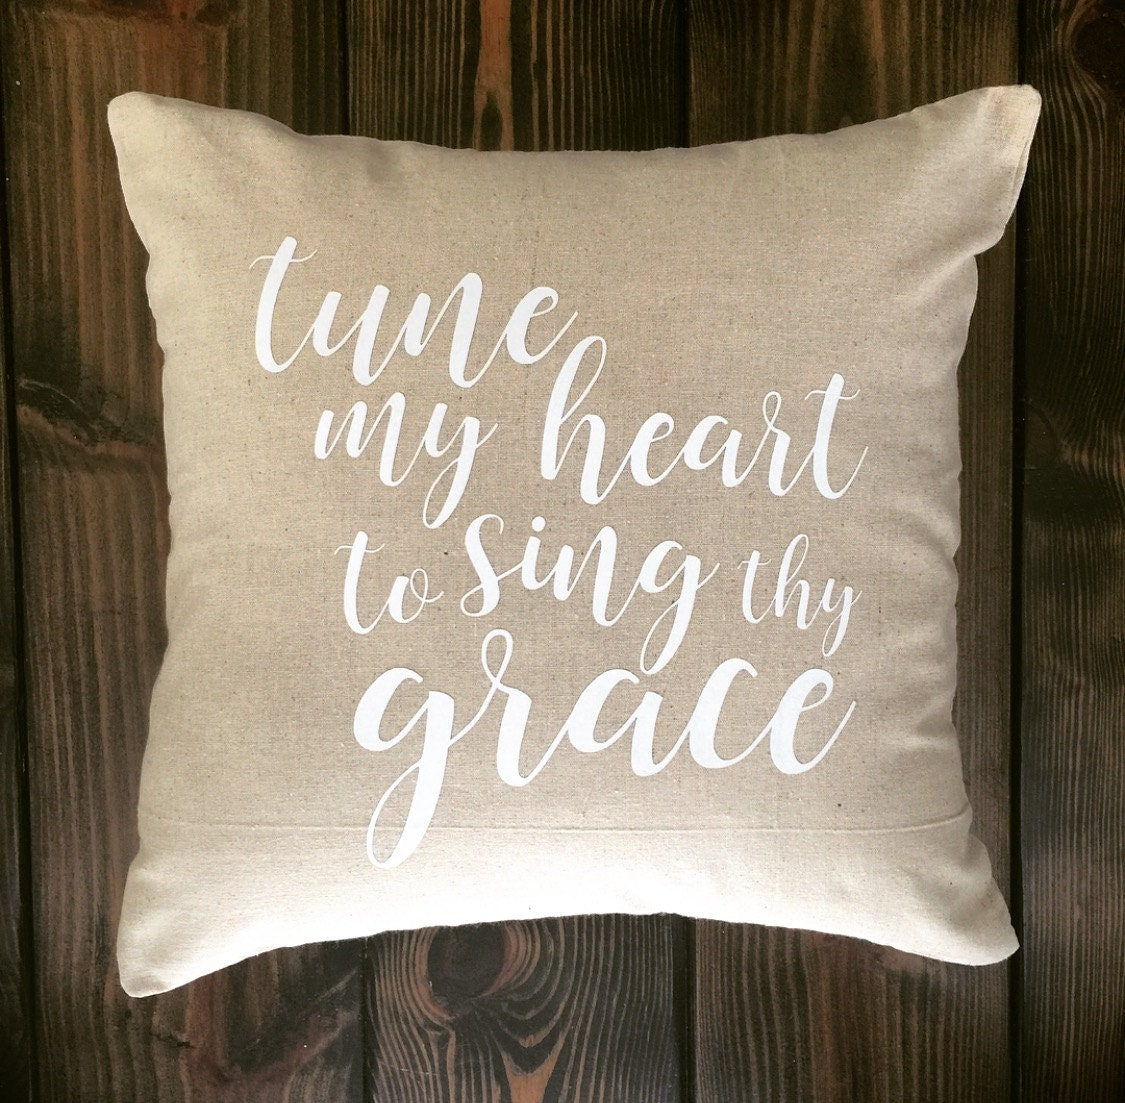 Free Shipping Hymns Pillow Cover, Pillow Case, 18x18, Cotton, Natural, Farmhouse, Shabby Chic, Cottage